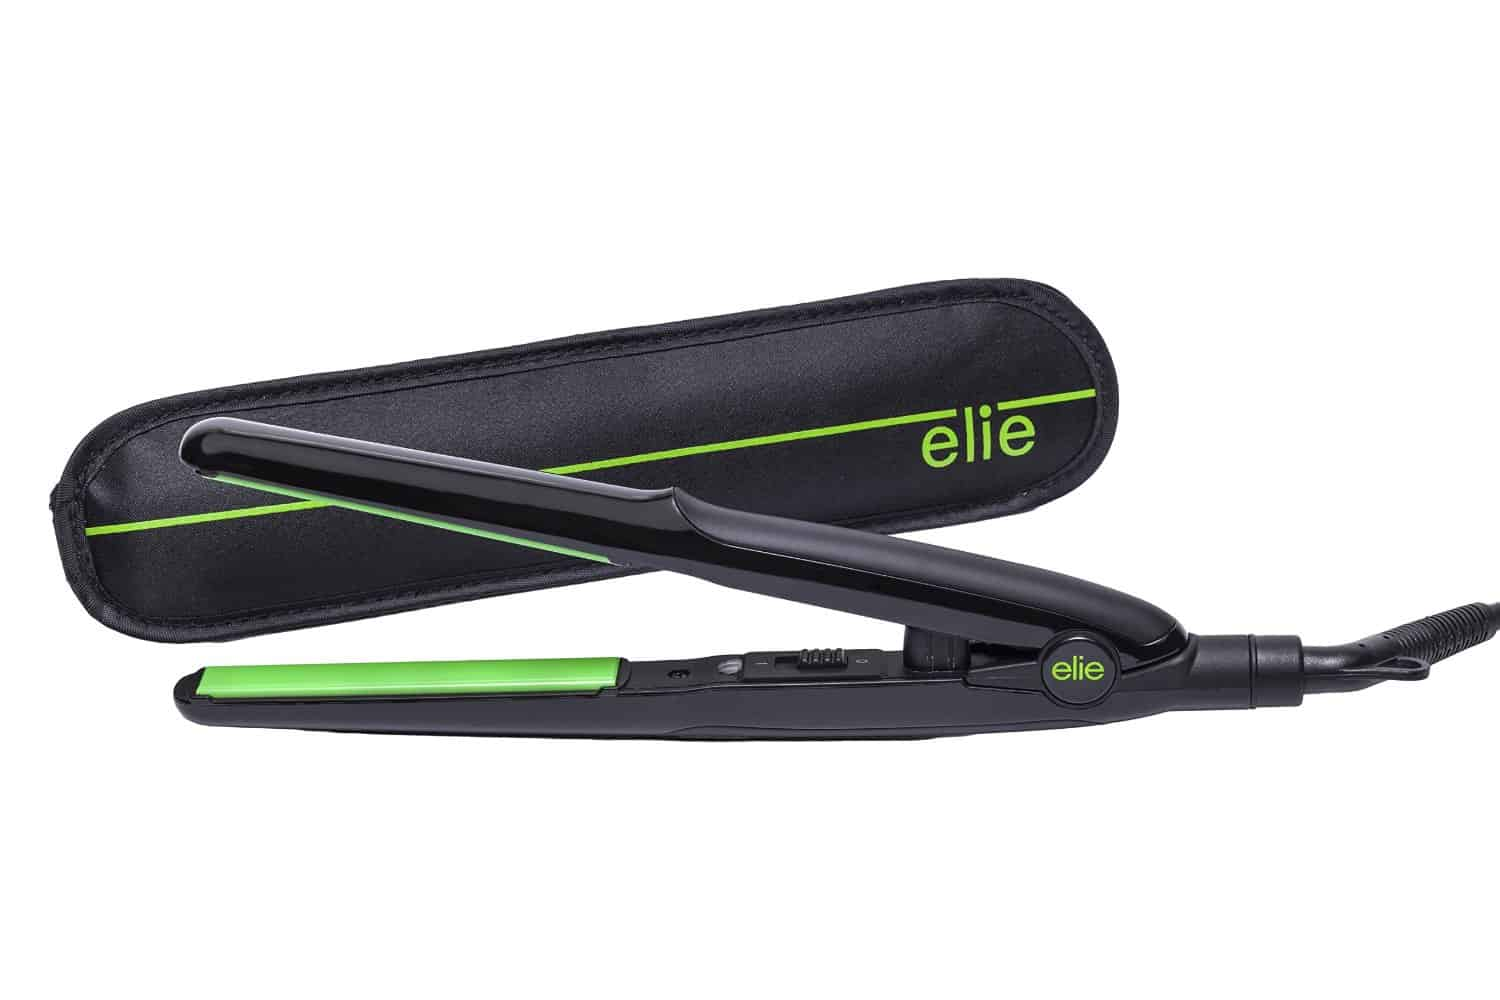 Elie Slim Hair Straightener storage